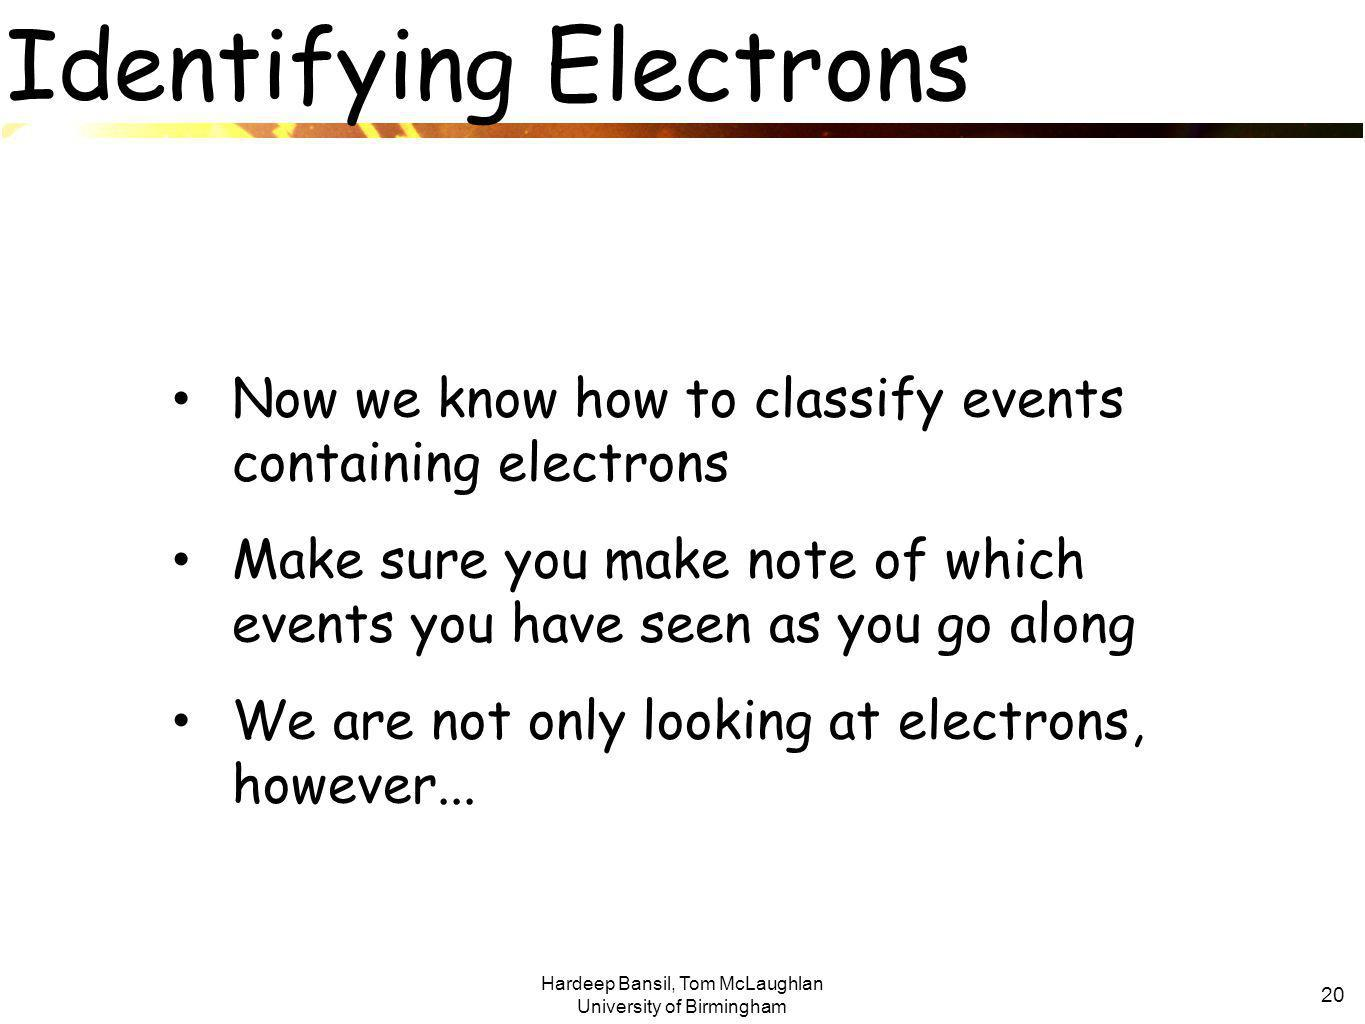 Hardeep Bansil, Tom McLaughlan University of Birmingham 20 Identifying Electrons Now we know how to classify events containing electrons Make sure you make note of which events you have seen as you go along We are not only looking at electrons, however...